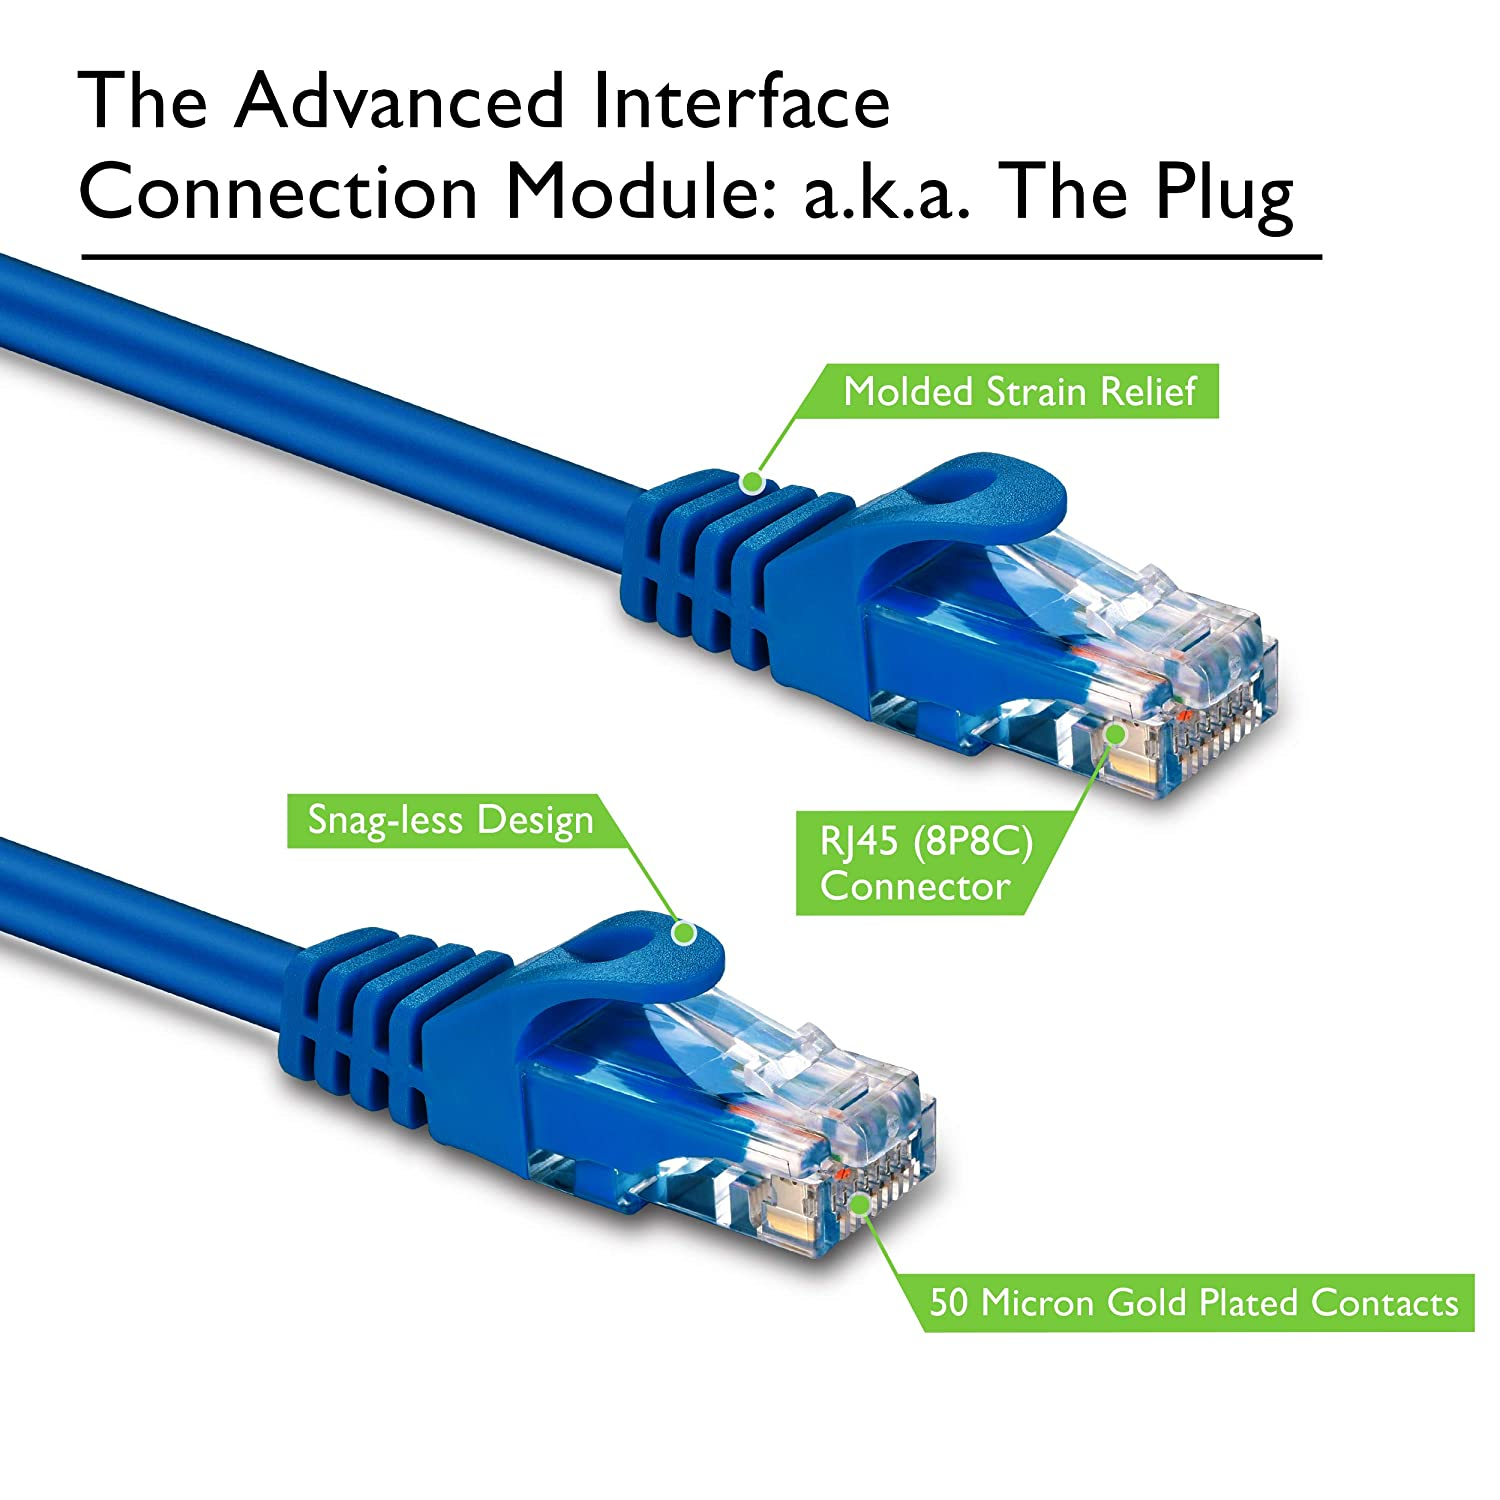 Preimum Series 18 Inches Cat 6 Ethernet Cable Snagless Flexible Soft Tab Blue GearIT 10-Pack Cat6 Patch Cable 1.5 Feet